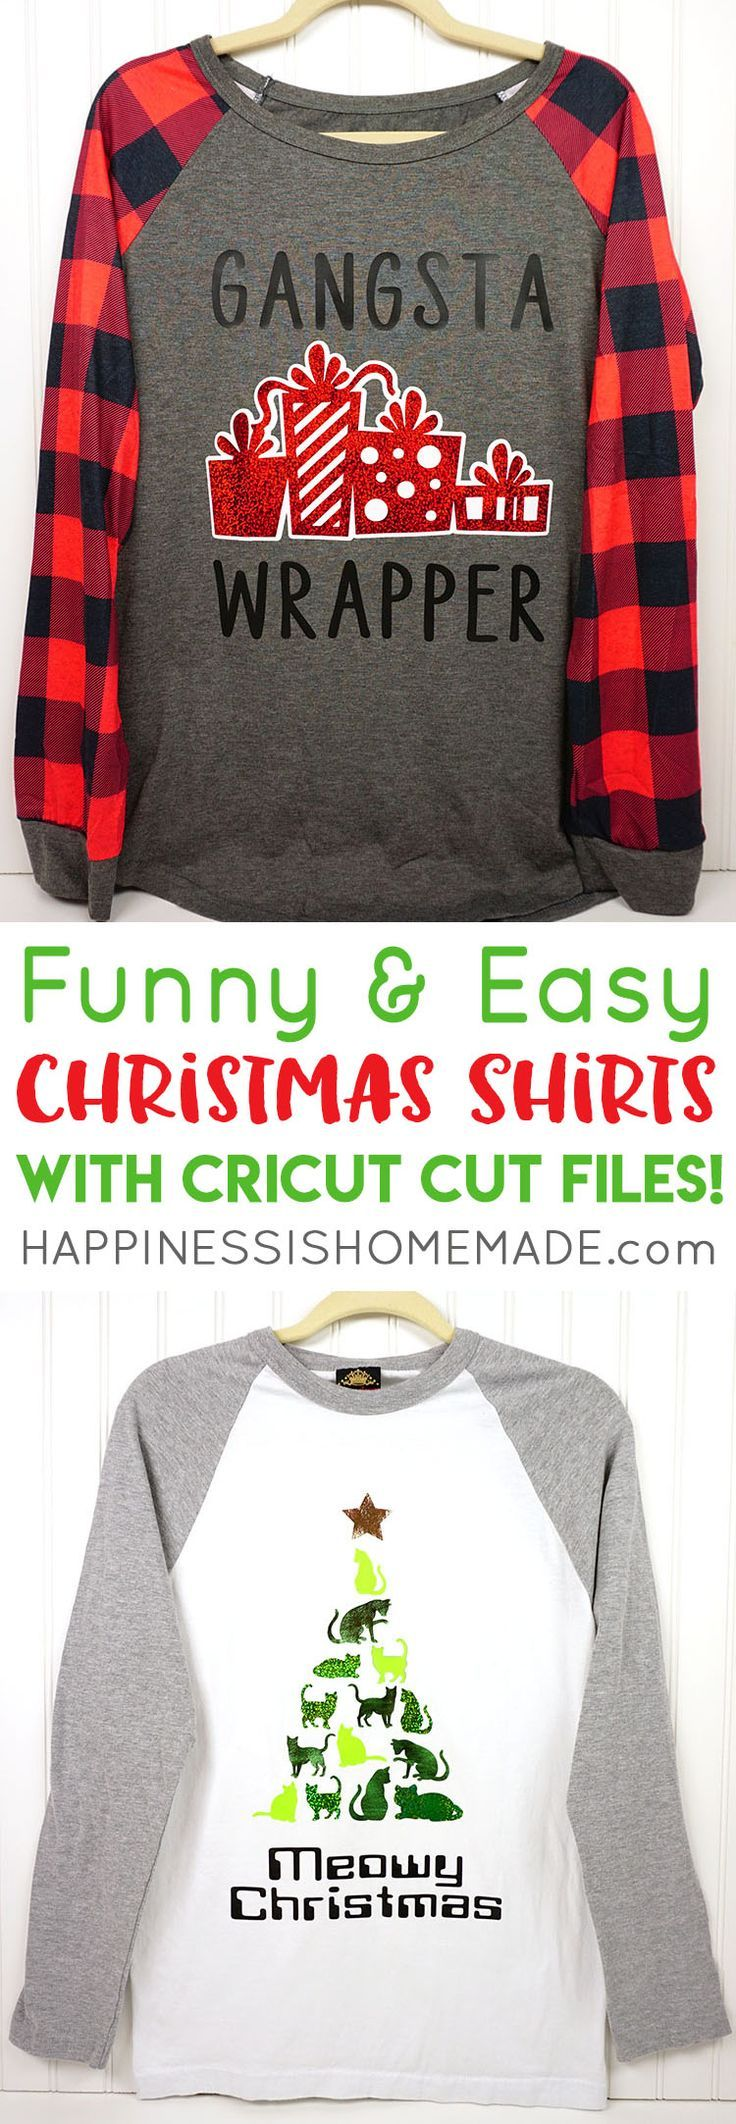 "When it comes to Christmas, are you a ""Gangsta Wrapper"" or a crazy cat lover who might wish people a ""Meowy Christmas?"" These DIY funny Christmas shirts are quick and easy to make with Cricut! Free Cricut Christmas cut files included! via @hiHomemadeBlog"